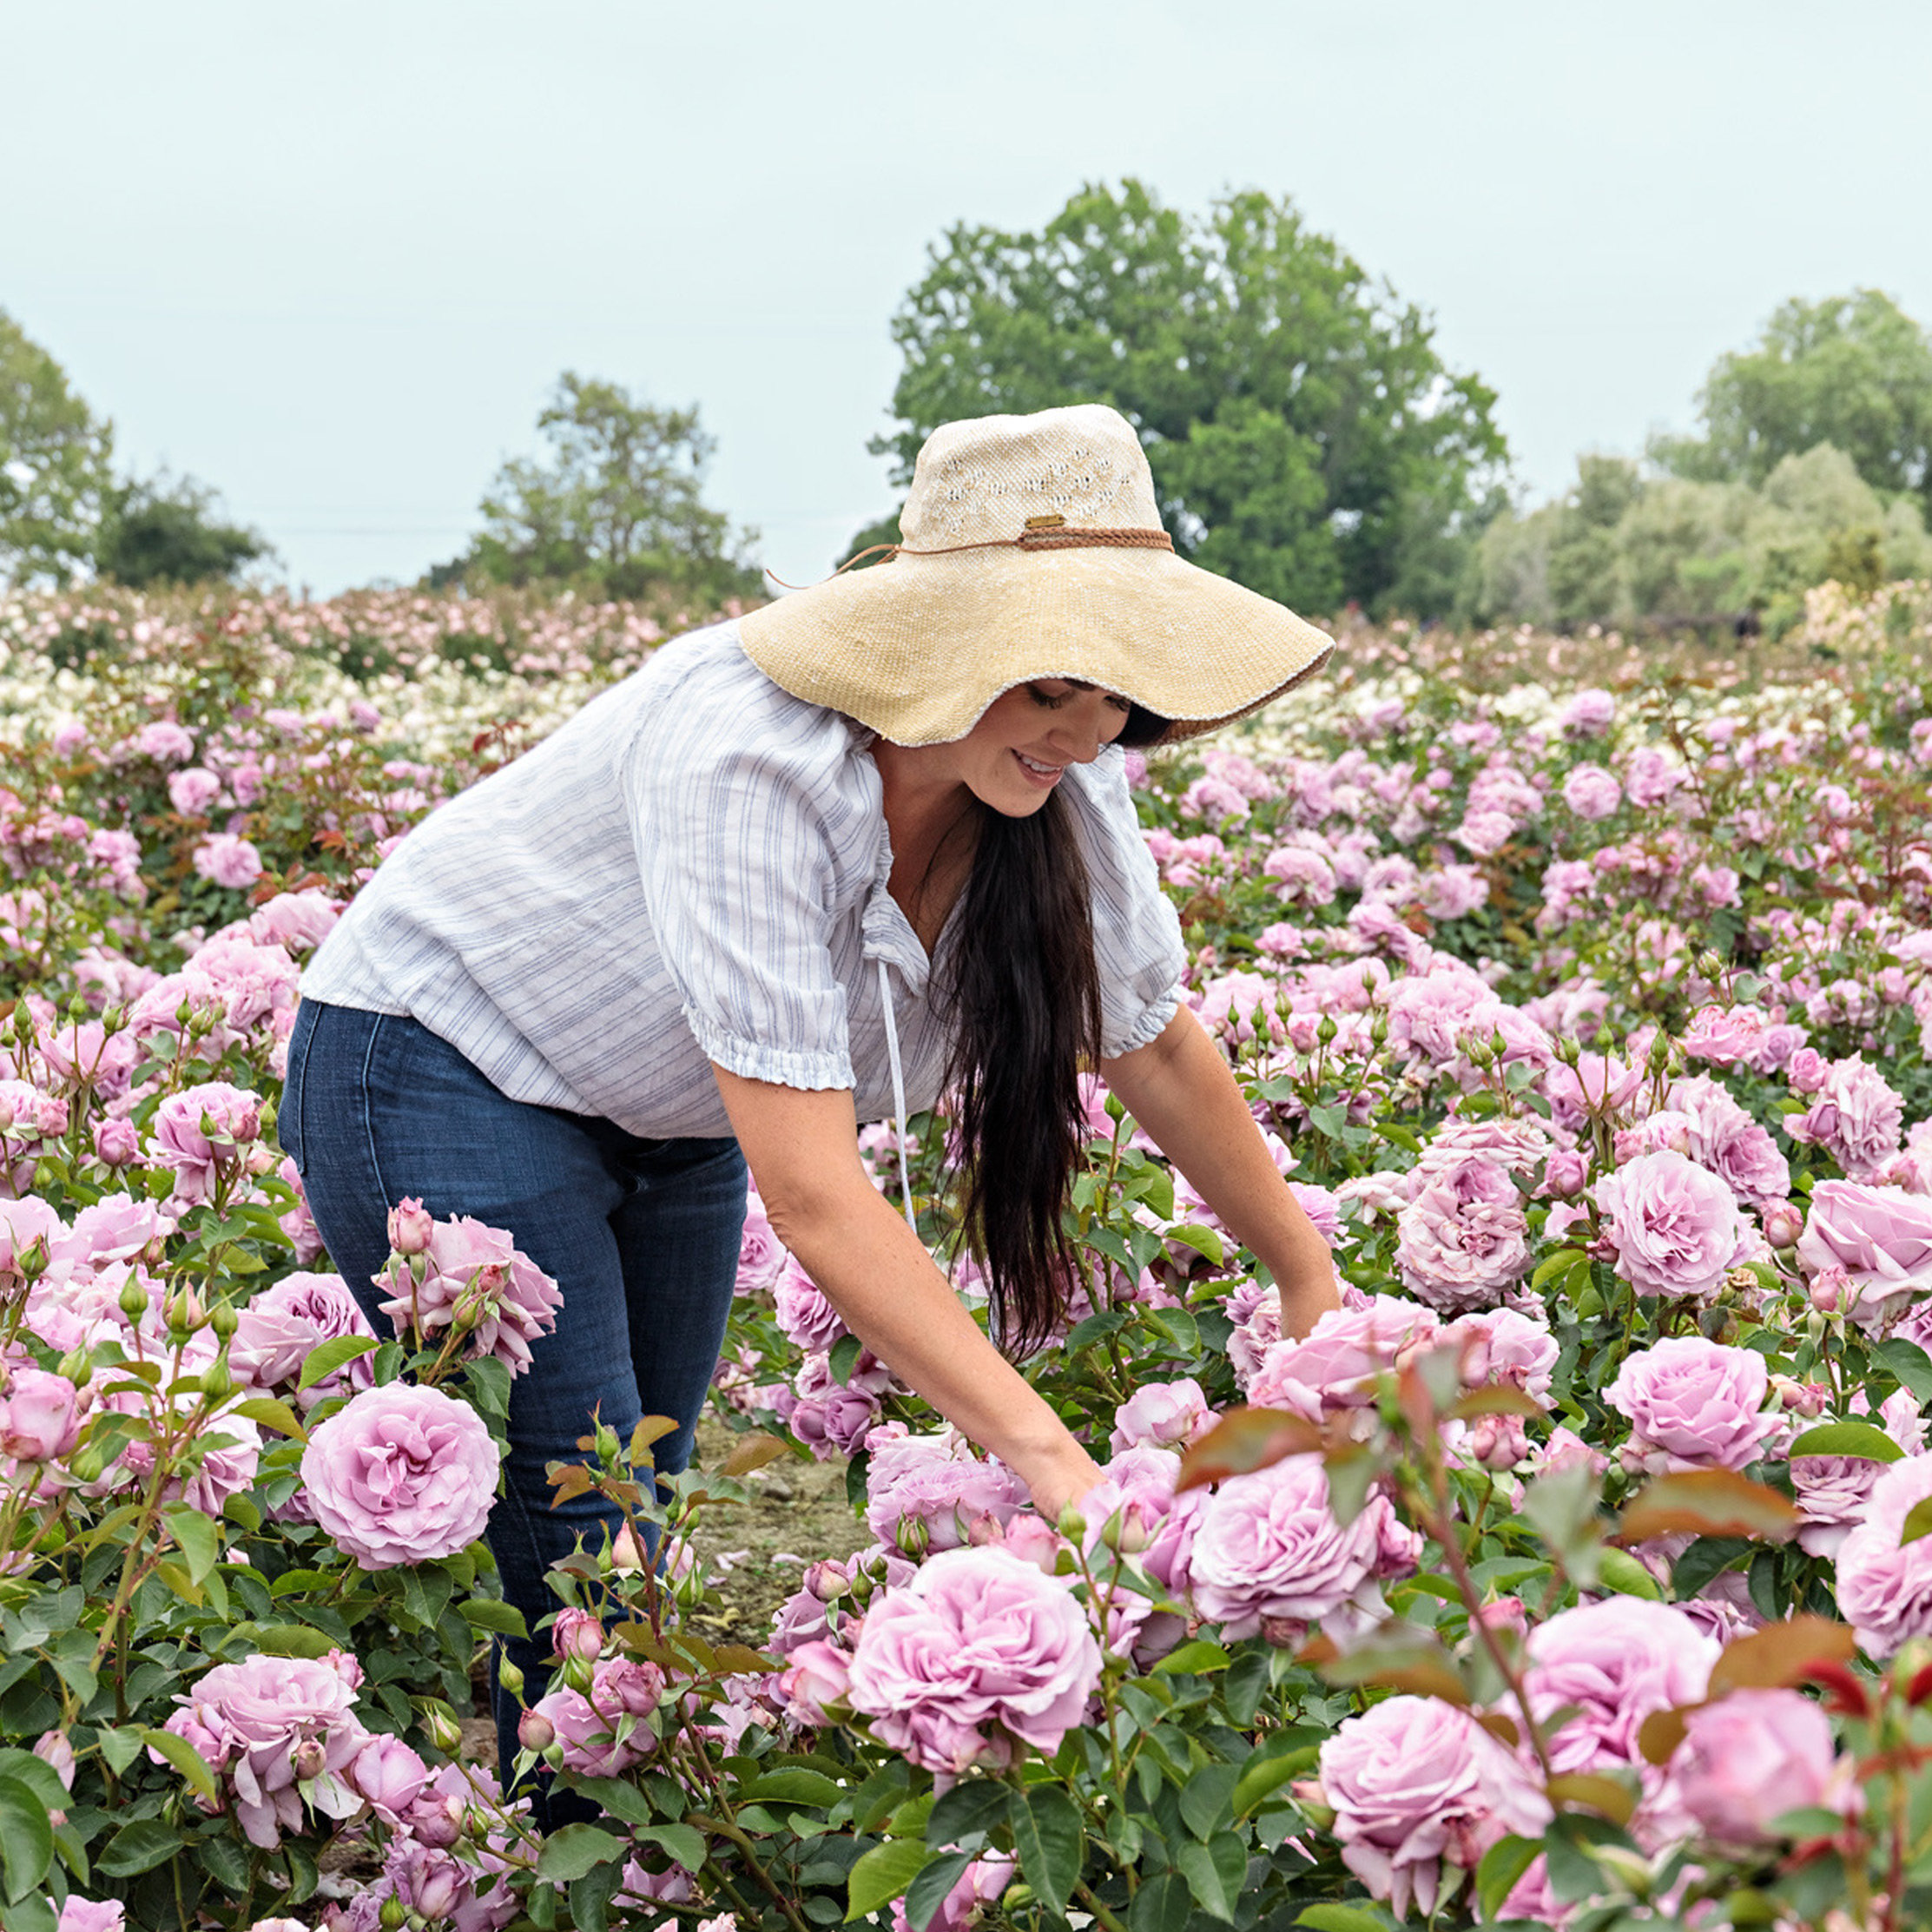 A Tour of Grace Rose Farm with Founder Gracie Poulson